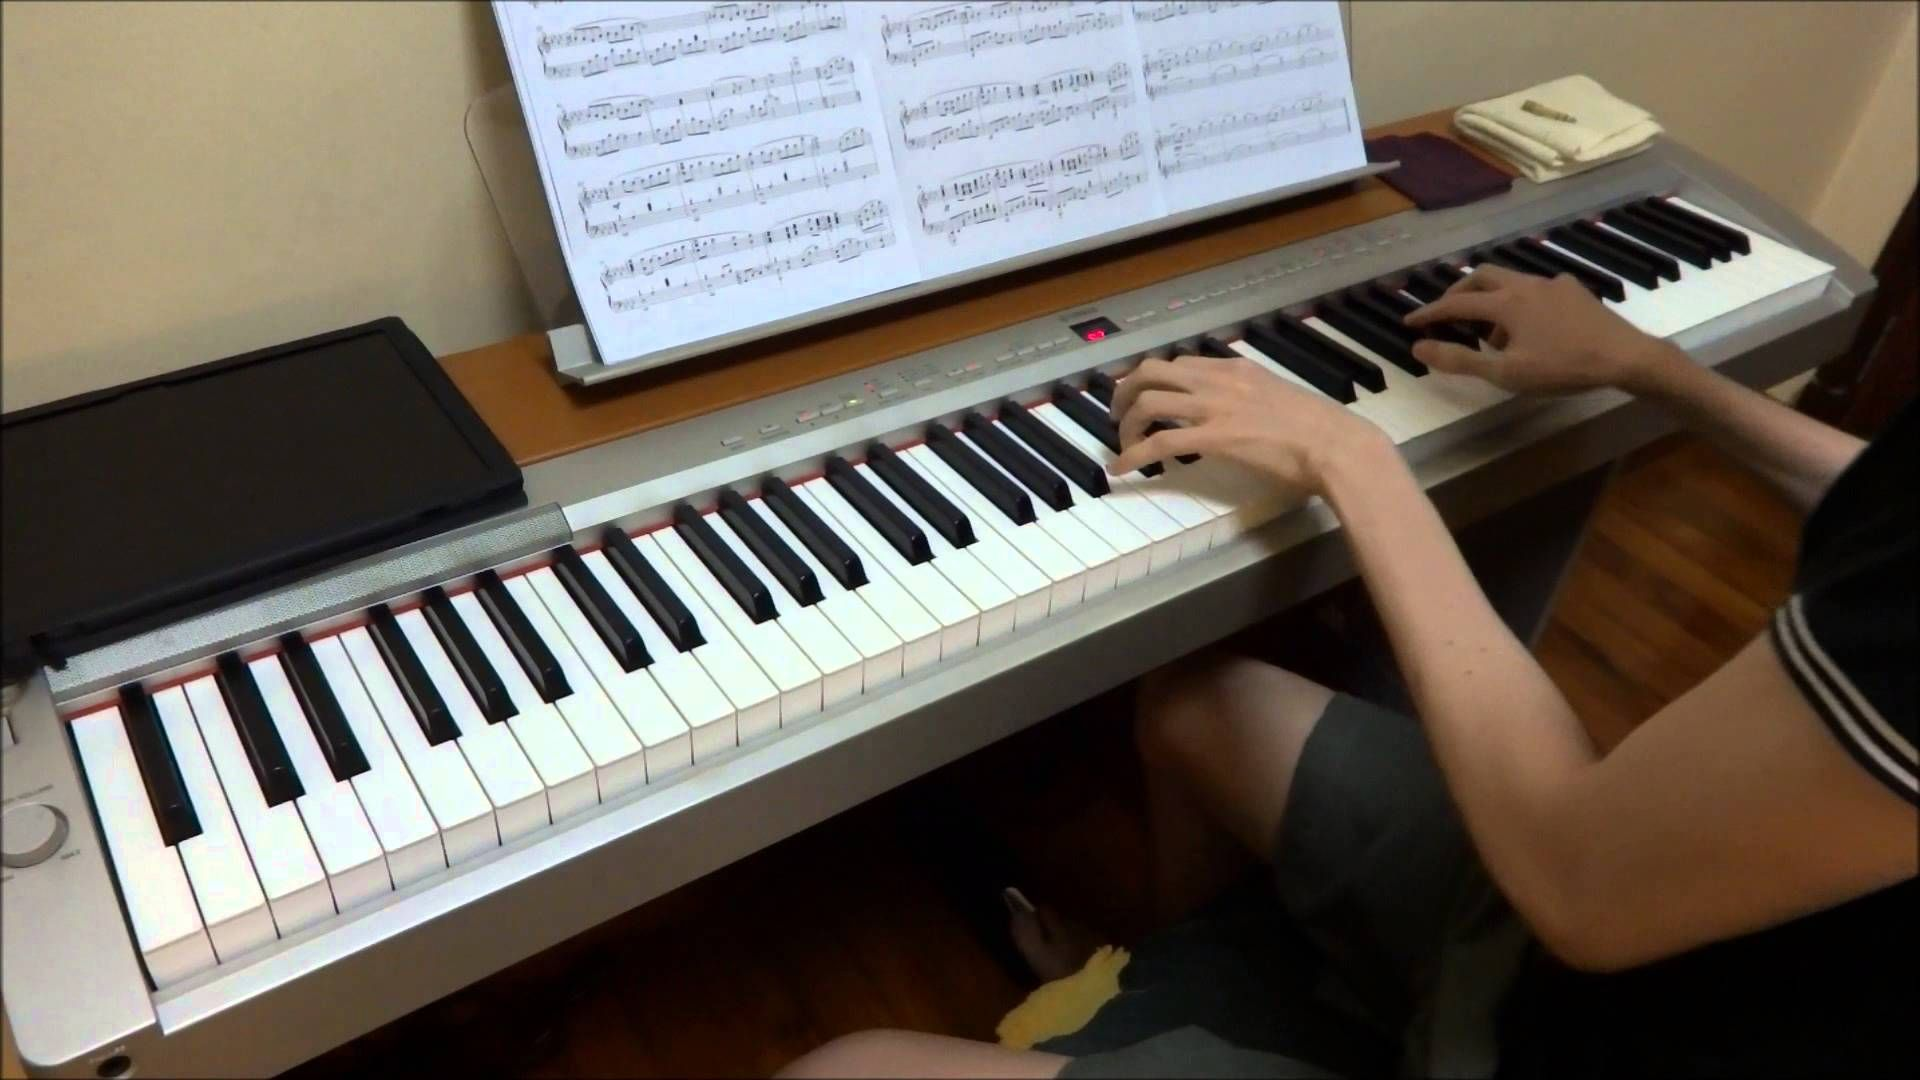 Clannad Dango Daikazoku Piano Arranged By Kyle Landry